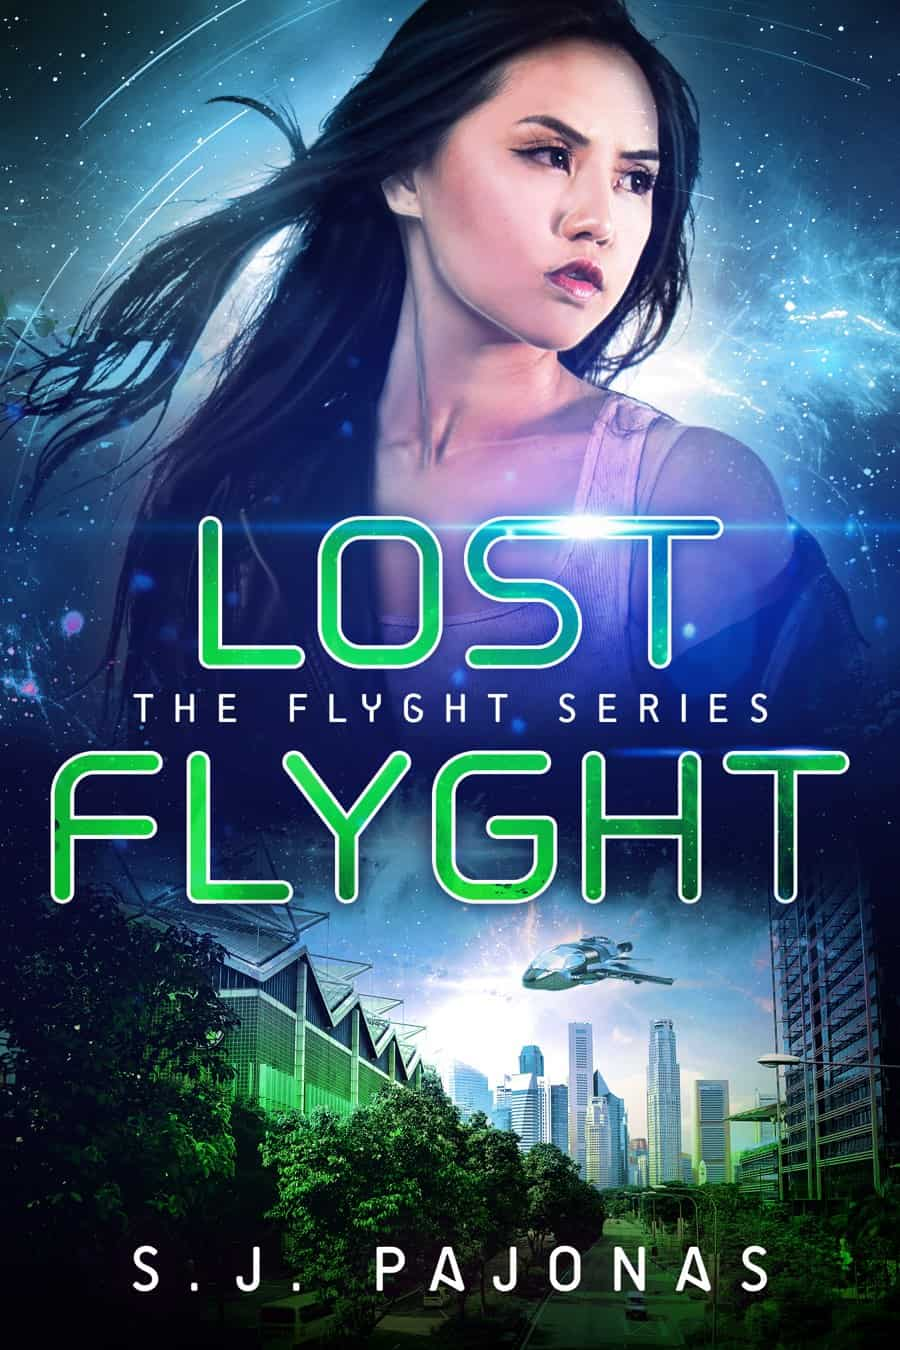 Pre-order LOST FLYGHT, Book 4 of the Flyght Series, today and continue your journey with Vivian and the crew of the Amagi!